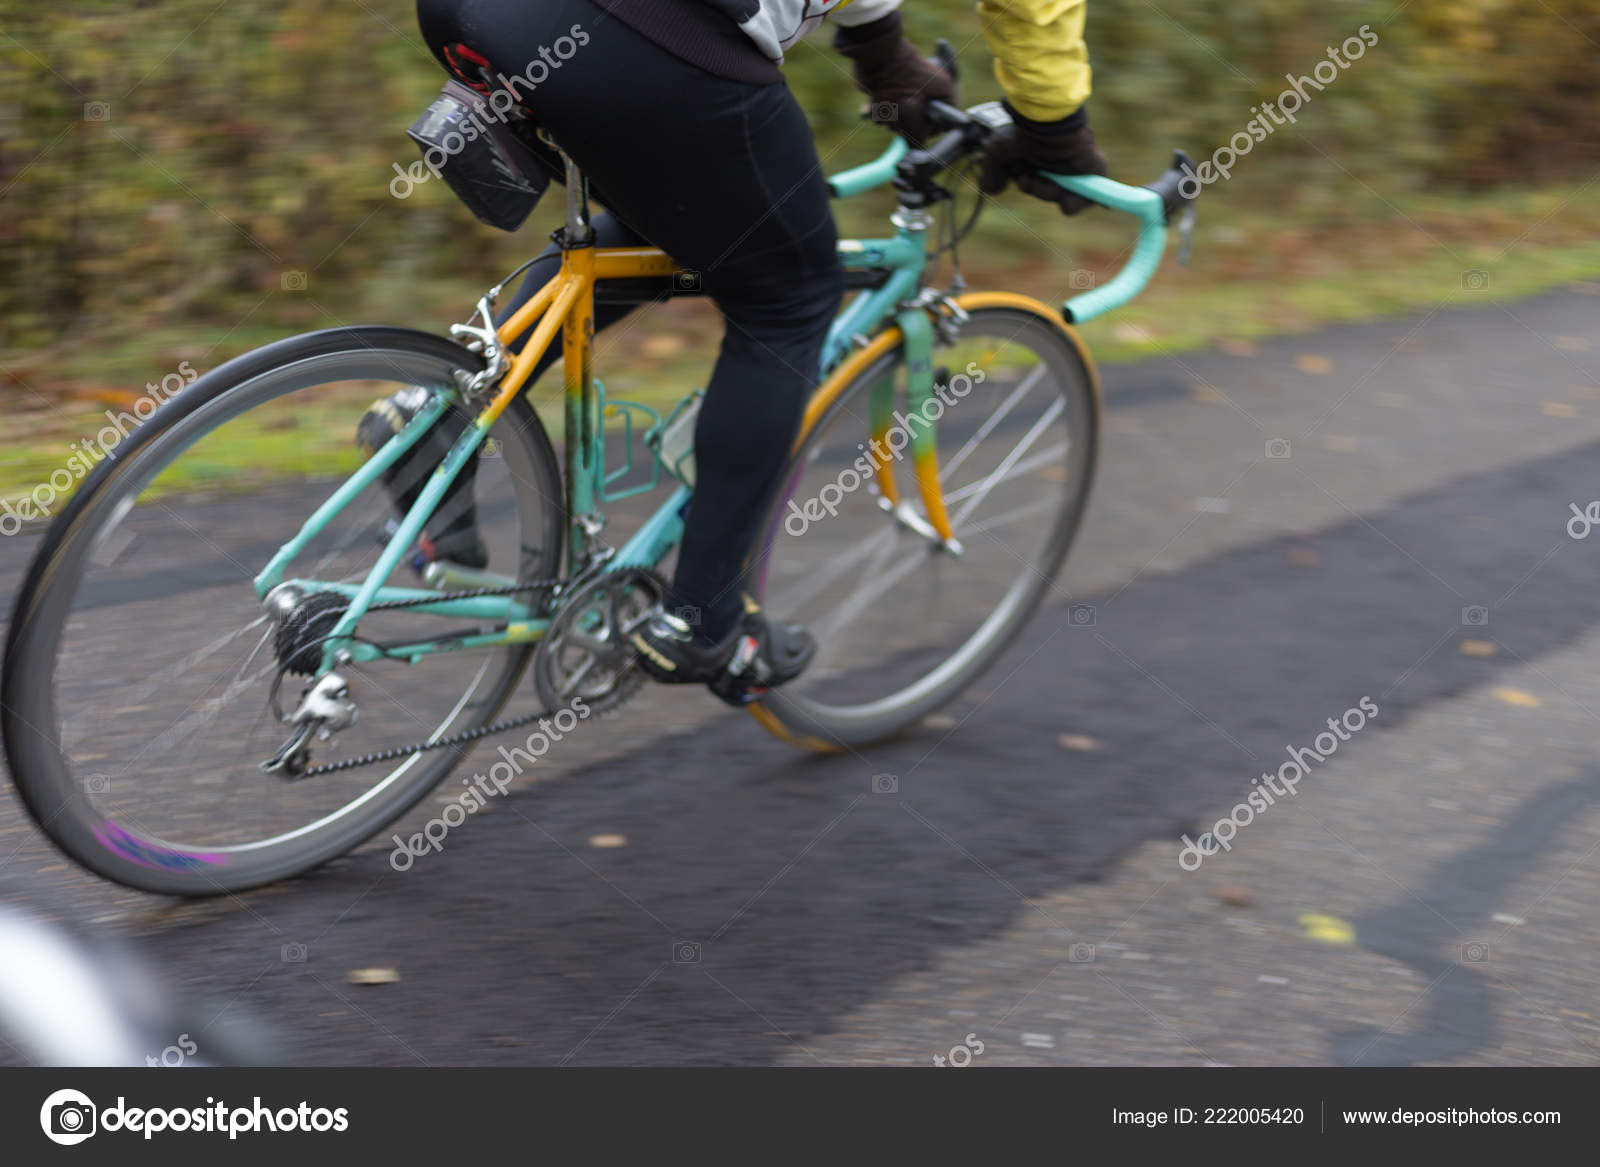 Bicycle Parts Outdoor Exercise Foggy November Day South Germany